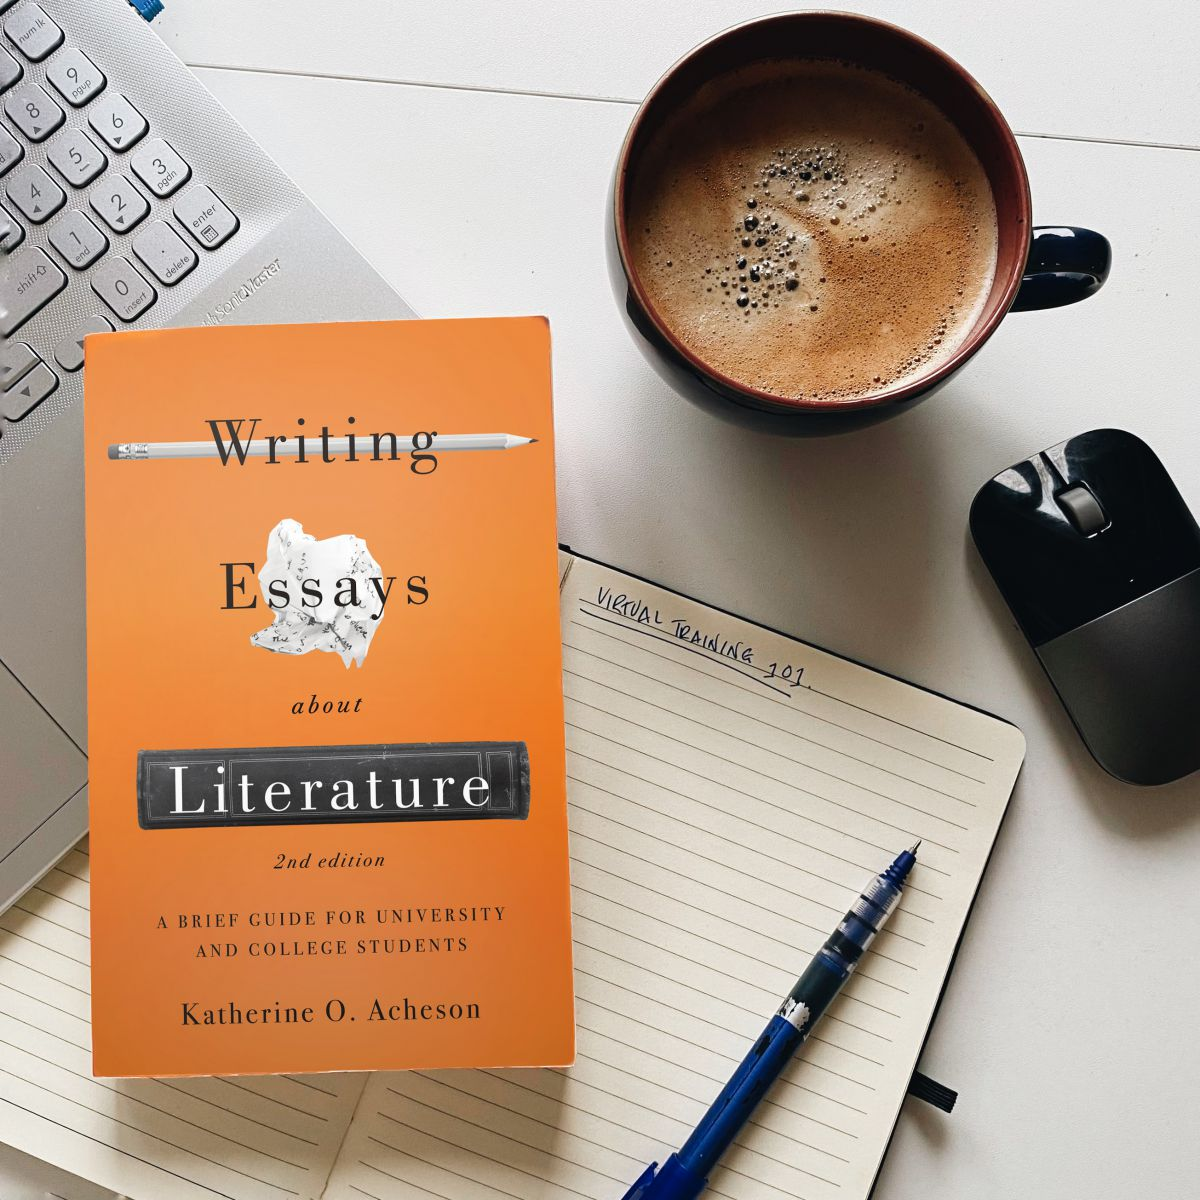 writing-essays-about-literature